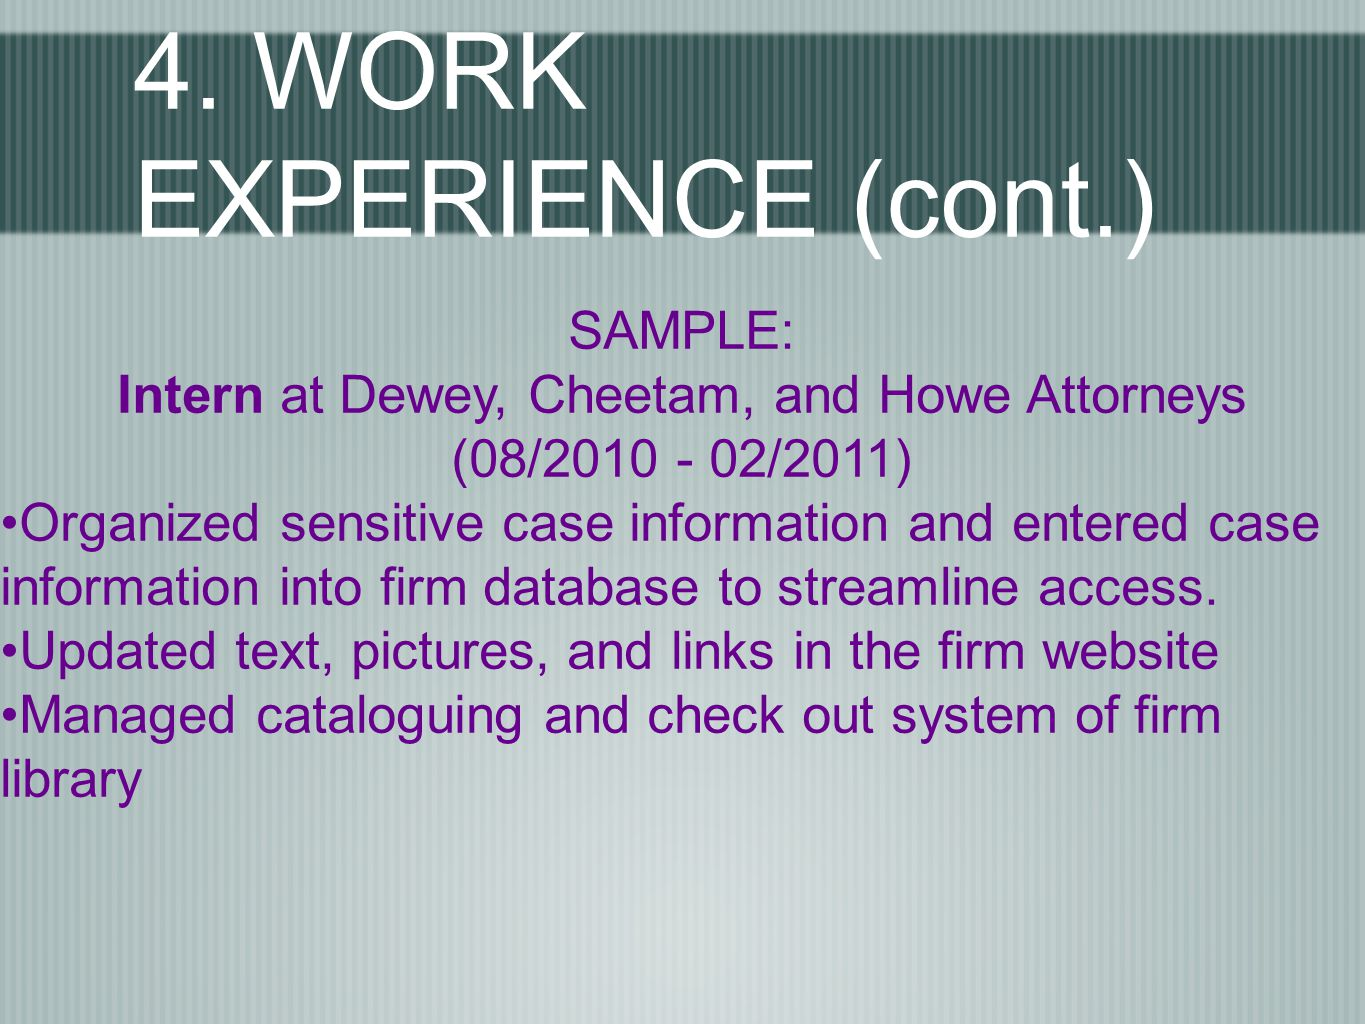 4. WORK EXPERIENCE (cont.) SAMPLE: Intern at Dewey, Cheetam, and Howe Attorneys (08/2010 - 02/2011) Organized sensitive case information and entered c